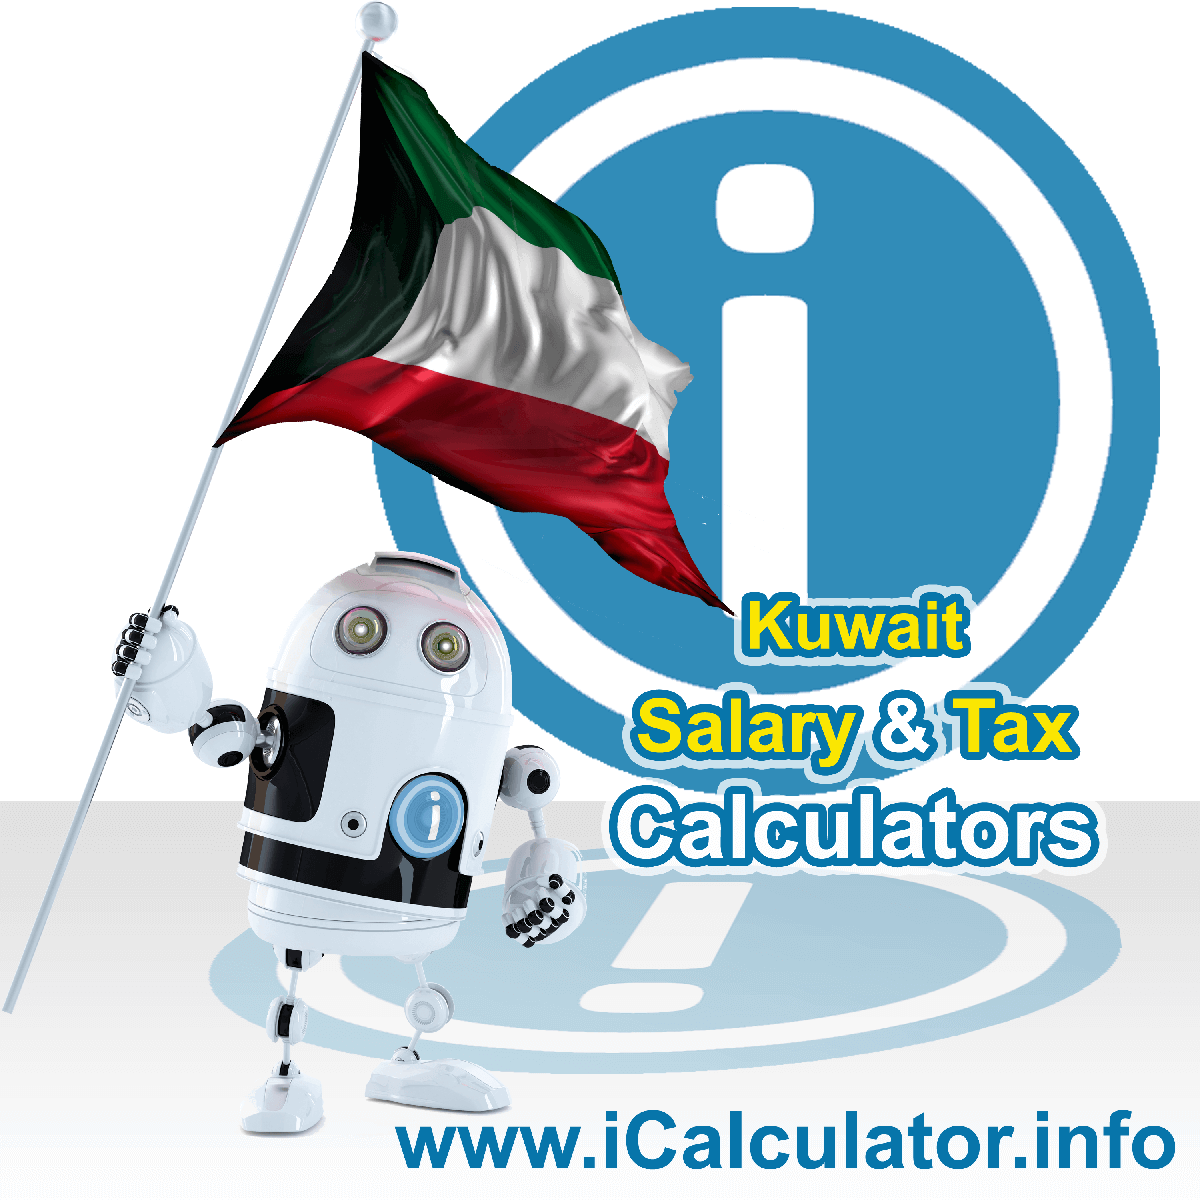 Kuwait Wage Calculator. This image shows the Kuwait flag and information relating to the tax formula for the Kuwait Tax Calculator